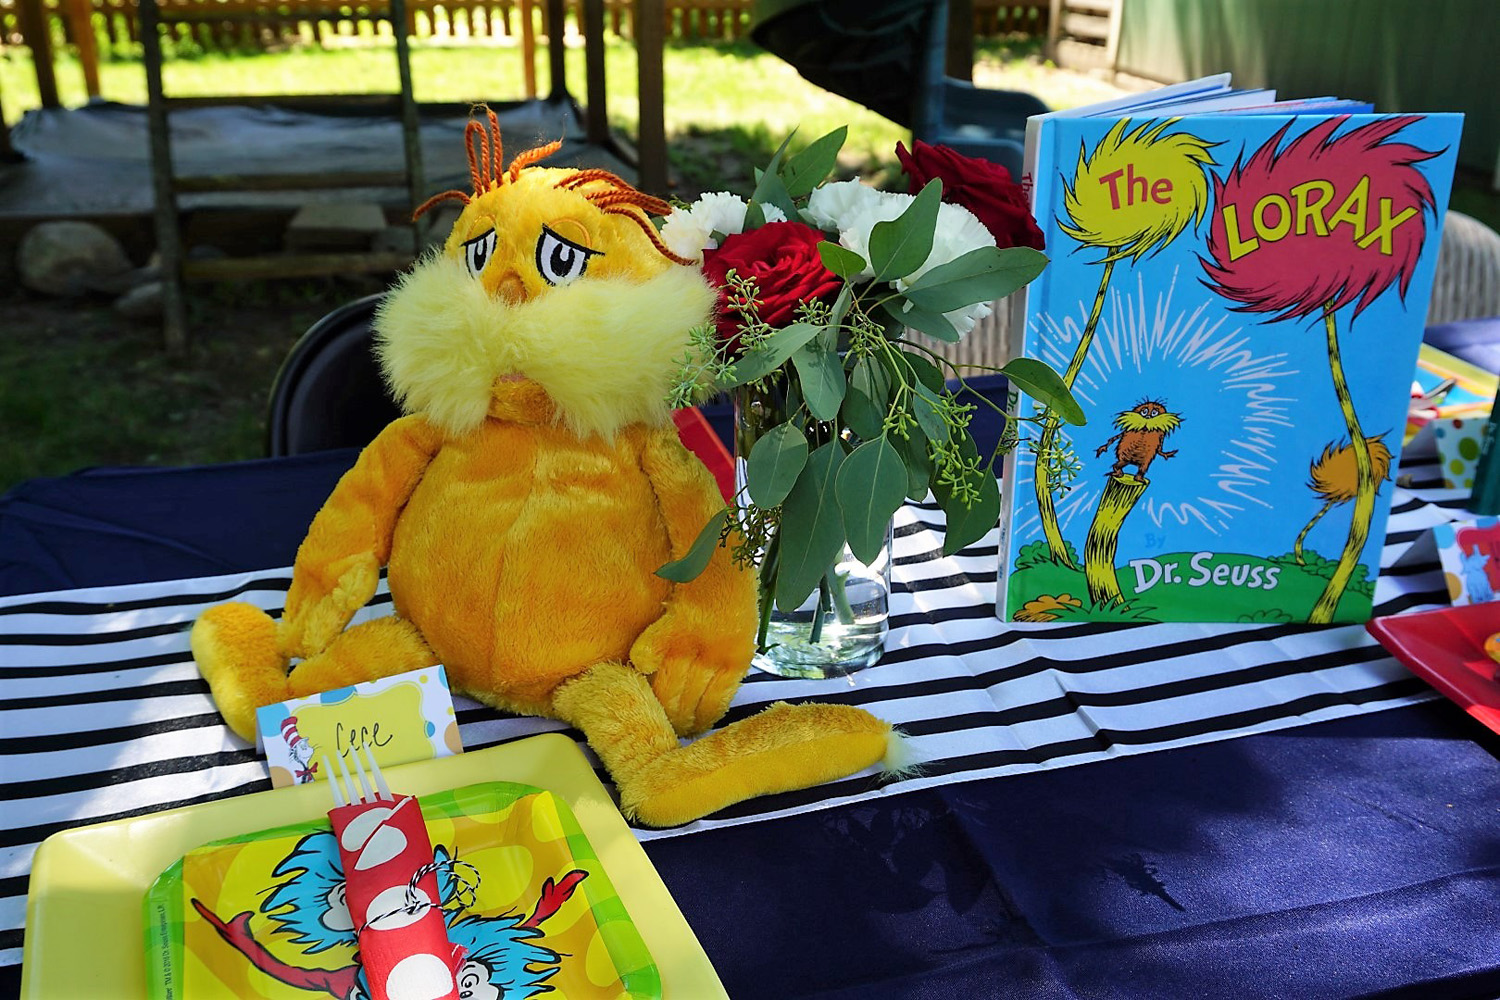 The Lorax as a centerpiece for a Dr. Seuss baby shower.